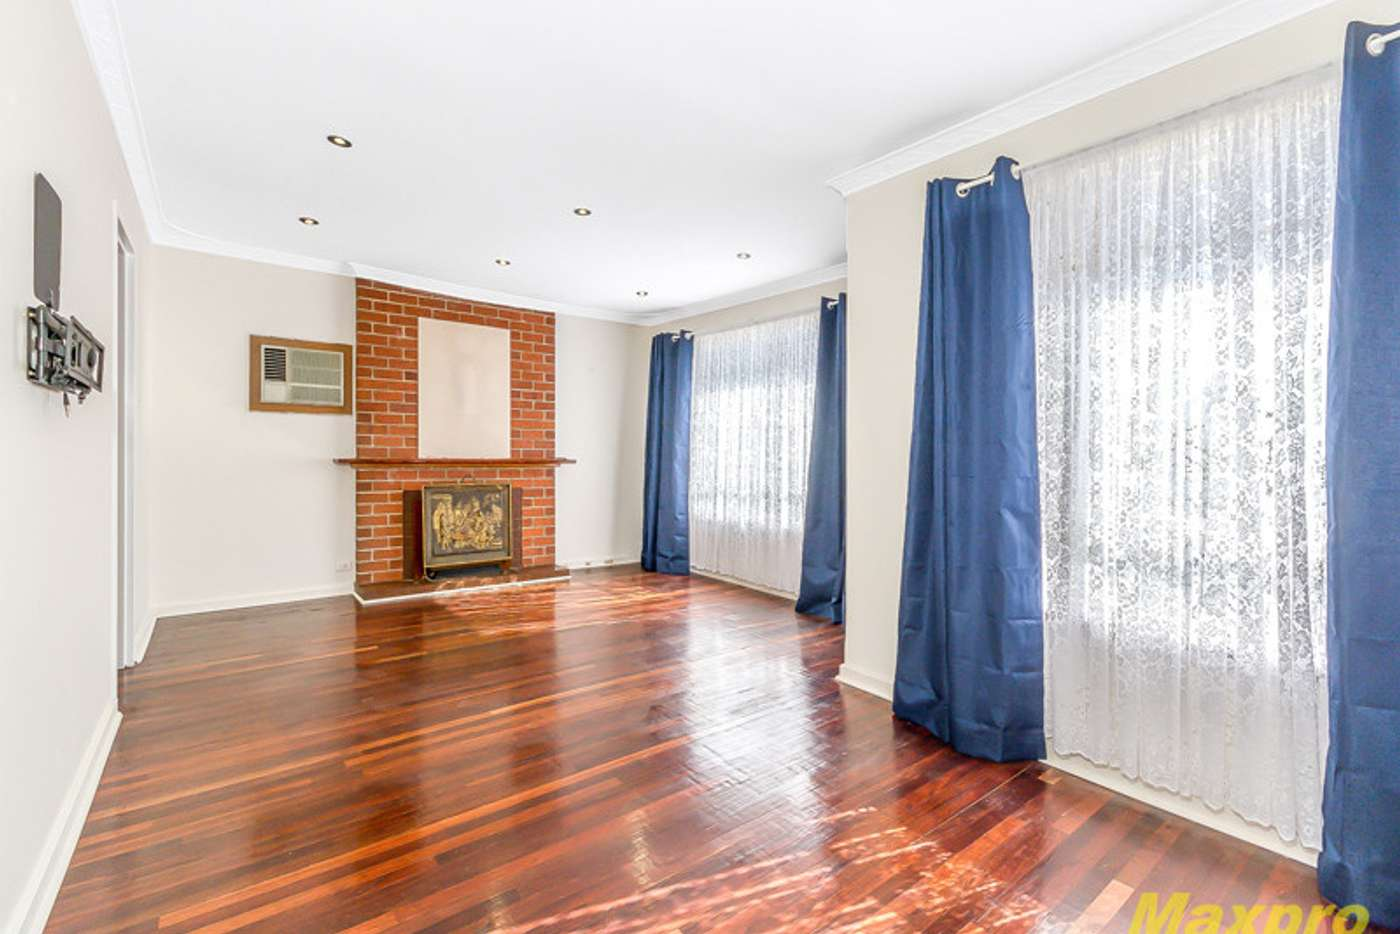 Fifth view of Homely house listing, 17 Montrose Street, Lynwood WA 6147